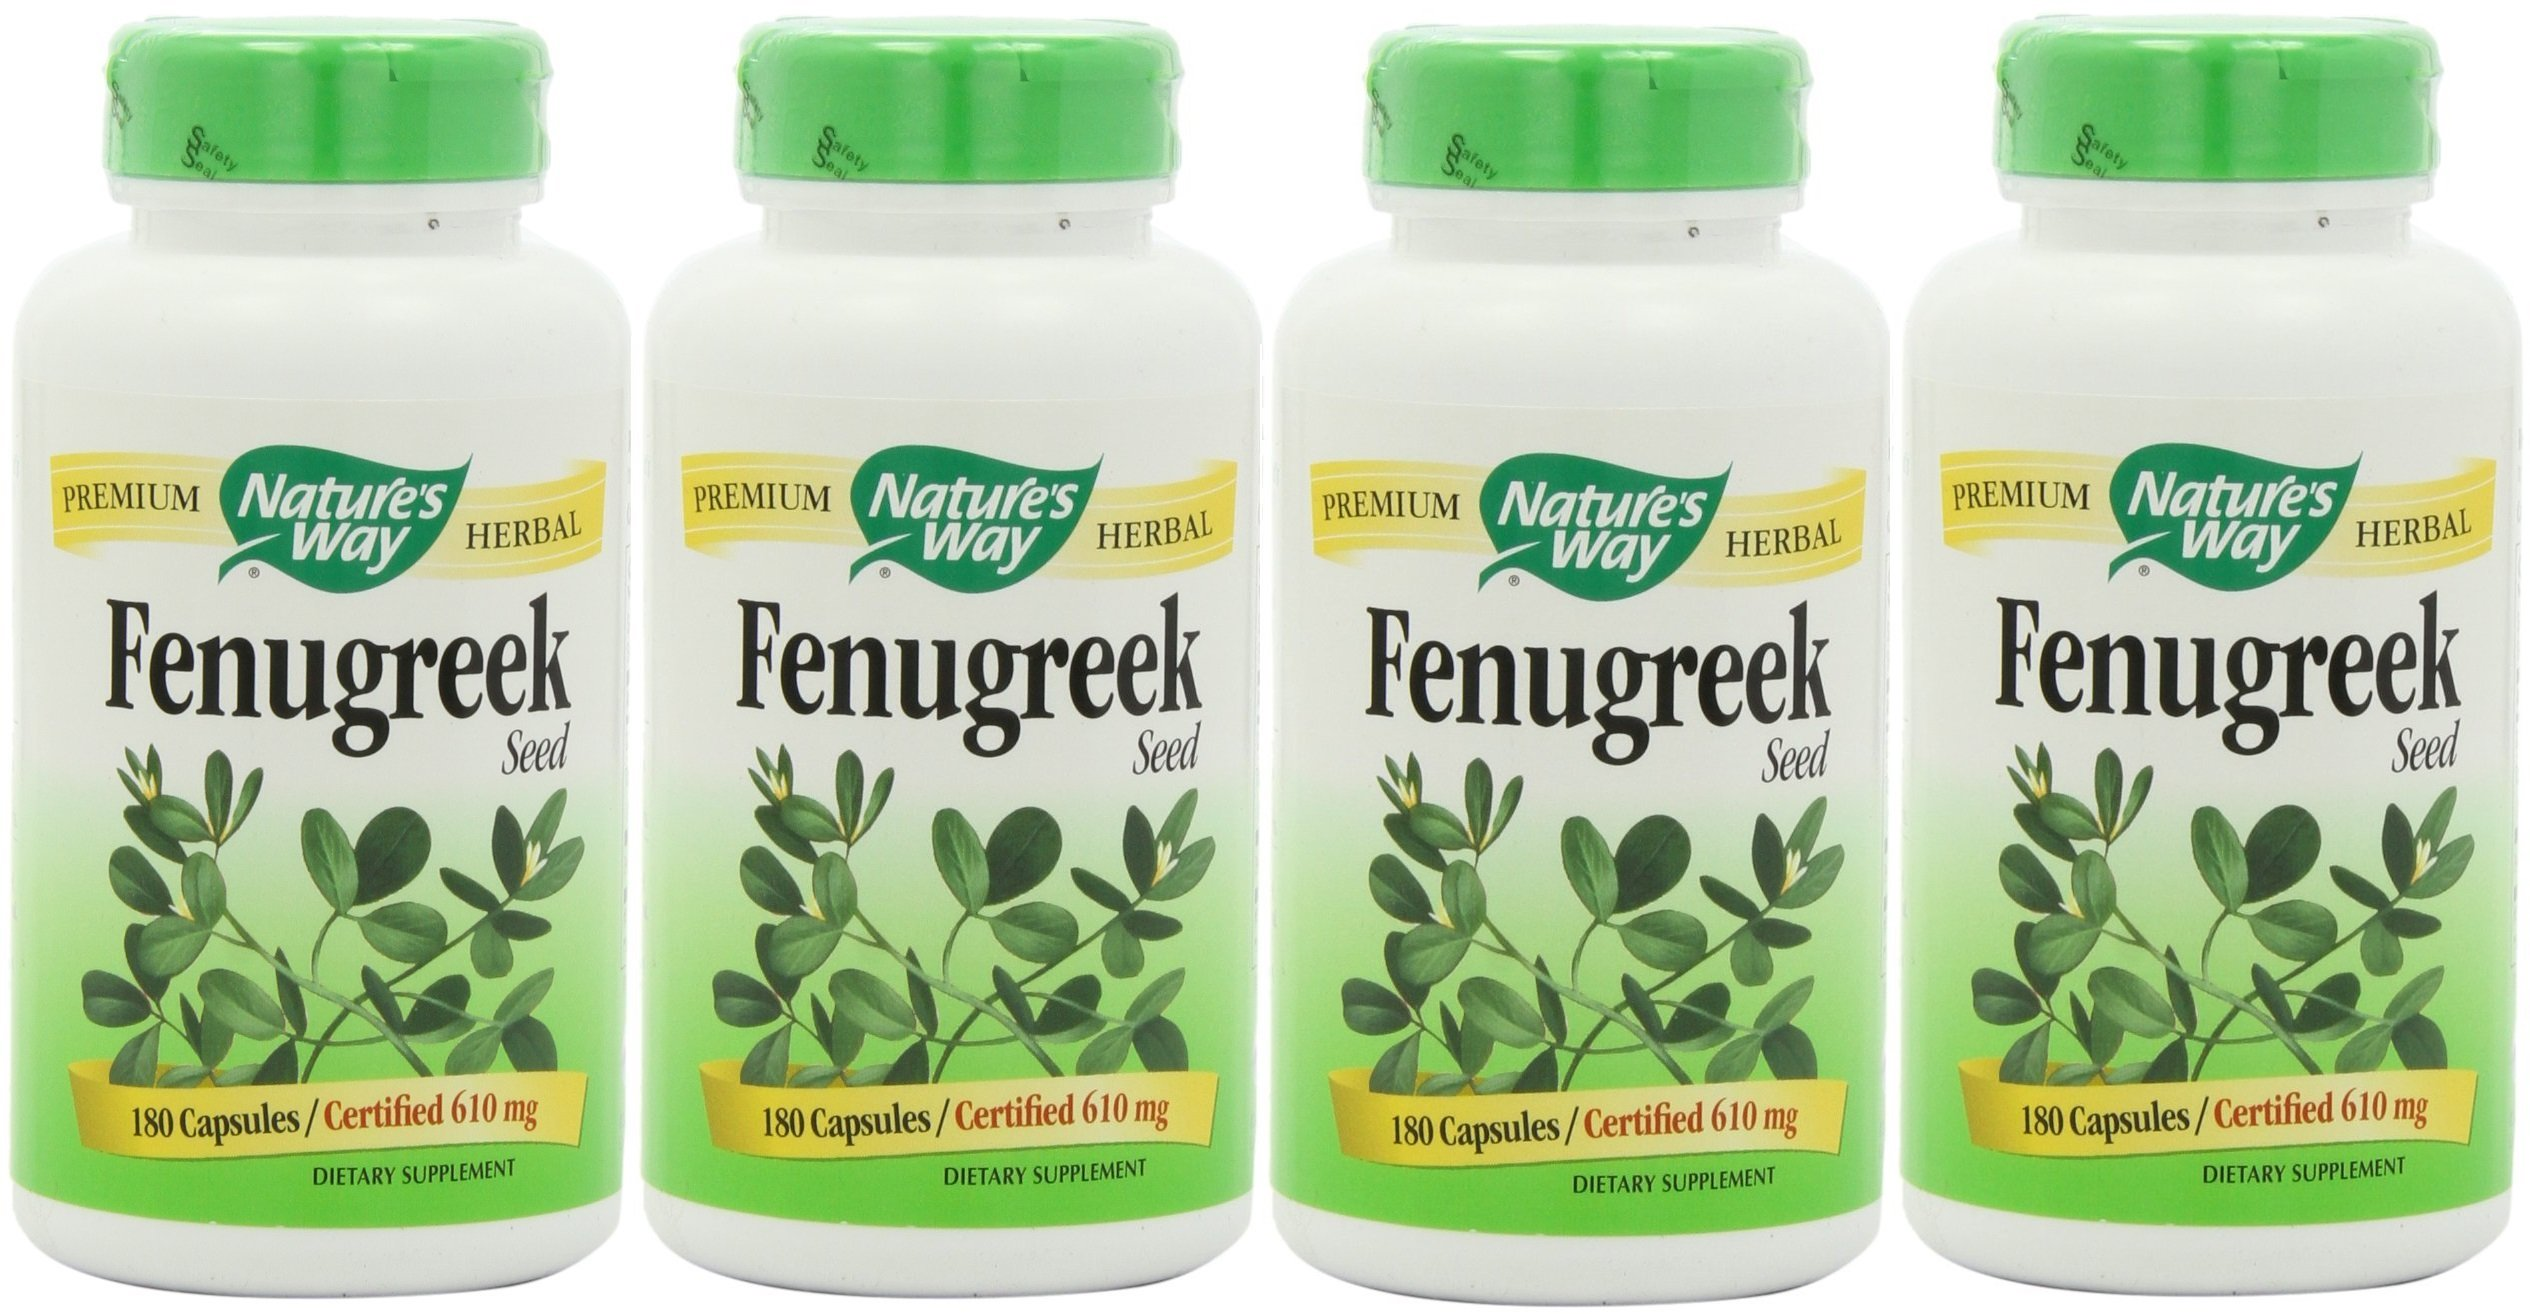 NATURE'S WAY FENUGREEK SEED, 180 Caps (Pack of 4)